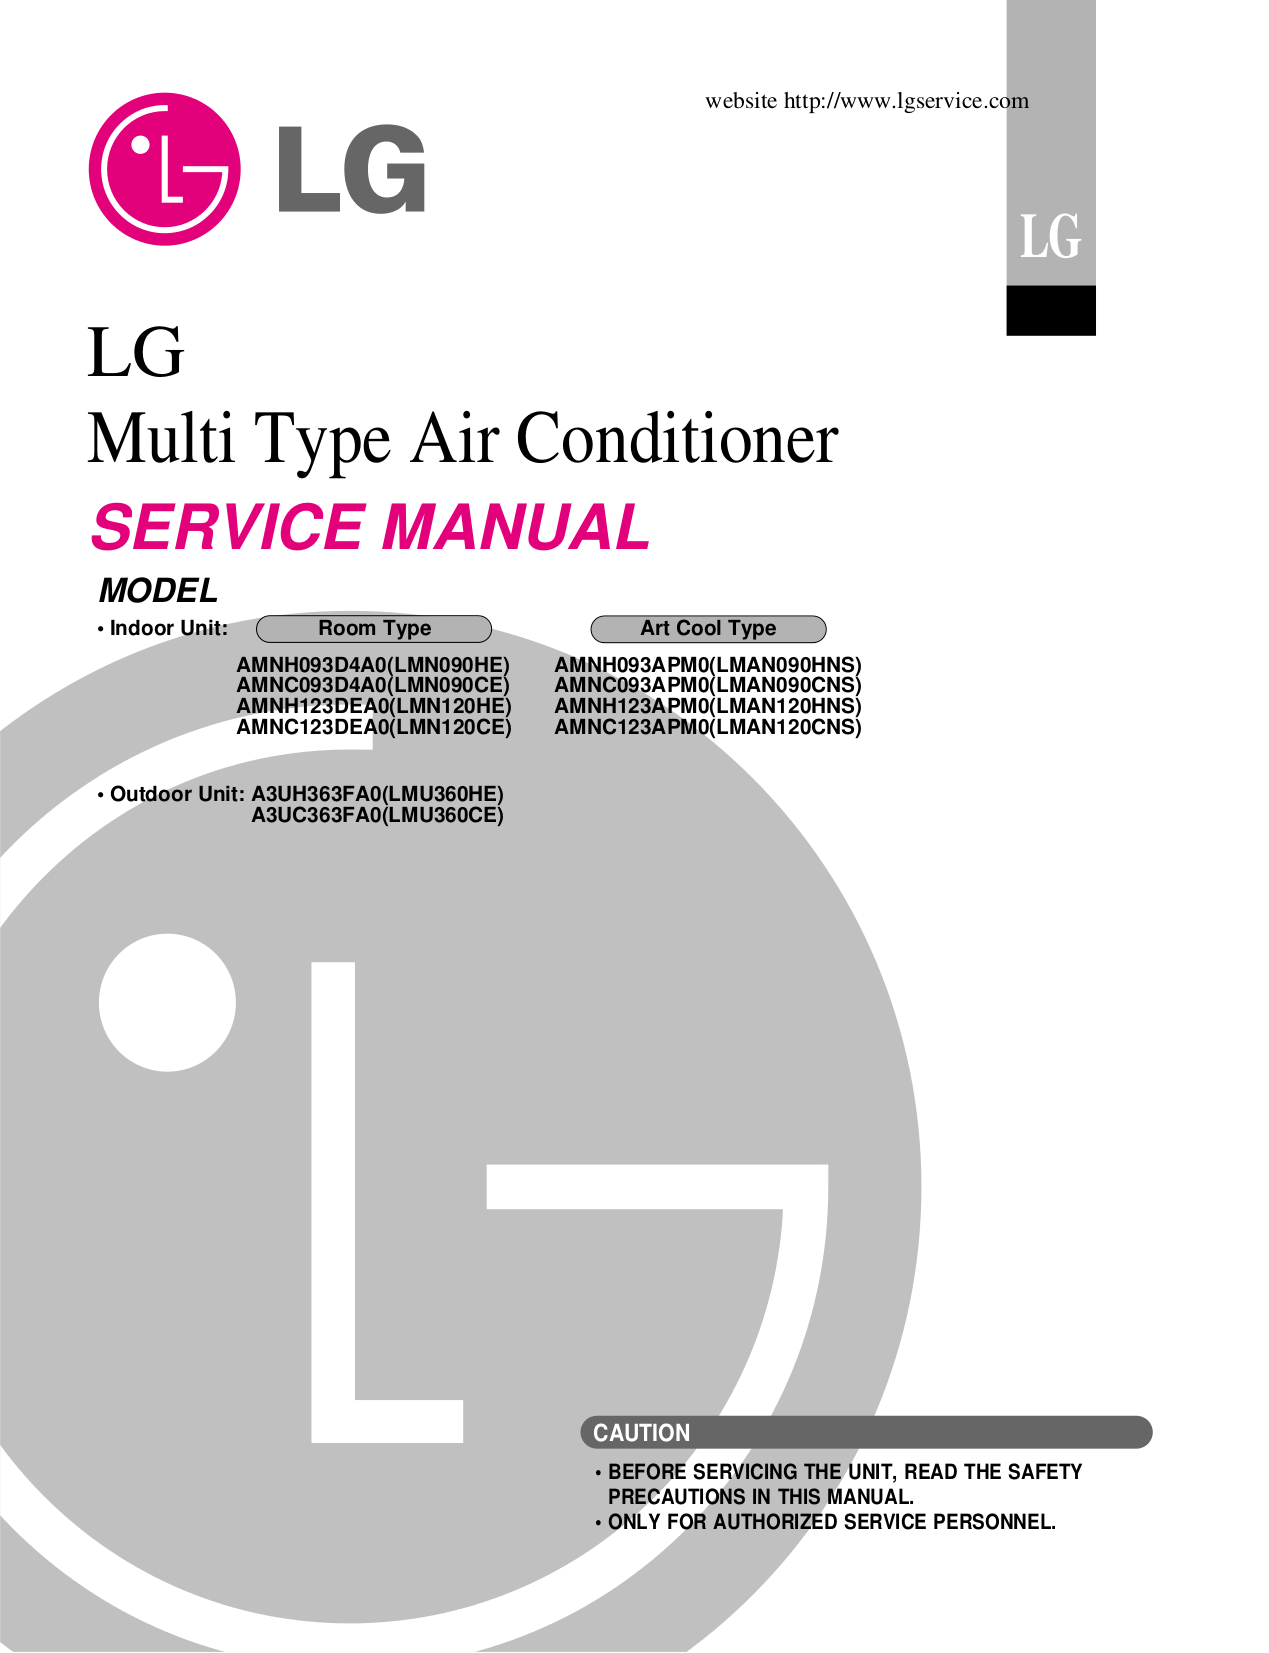 ... Array - lg manuals online ebook rh lg manuals online ebook nitrorocks de